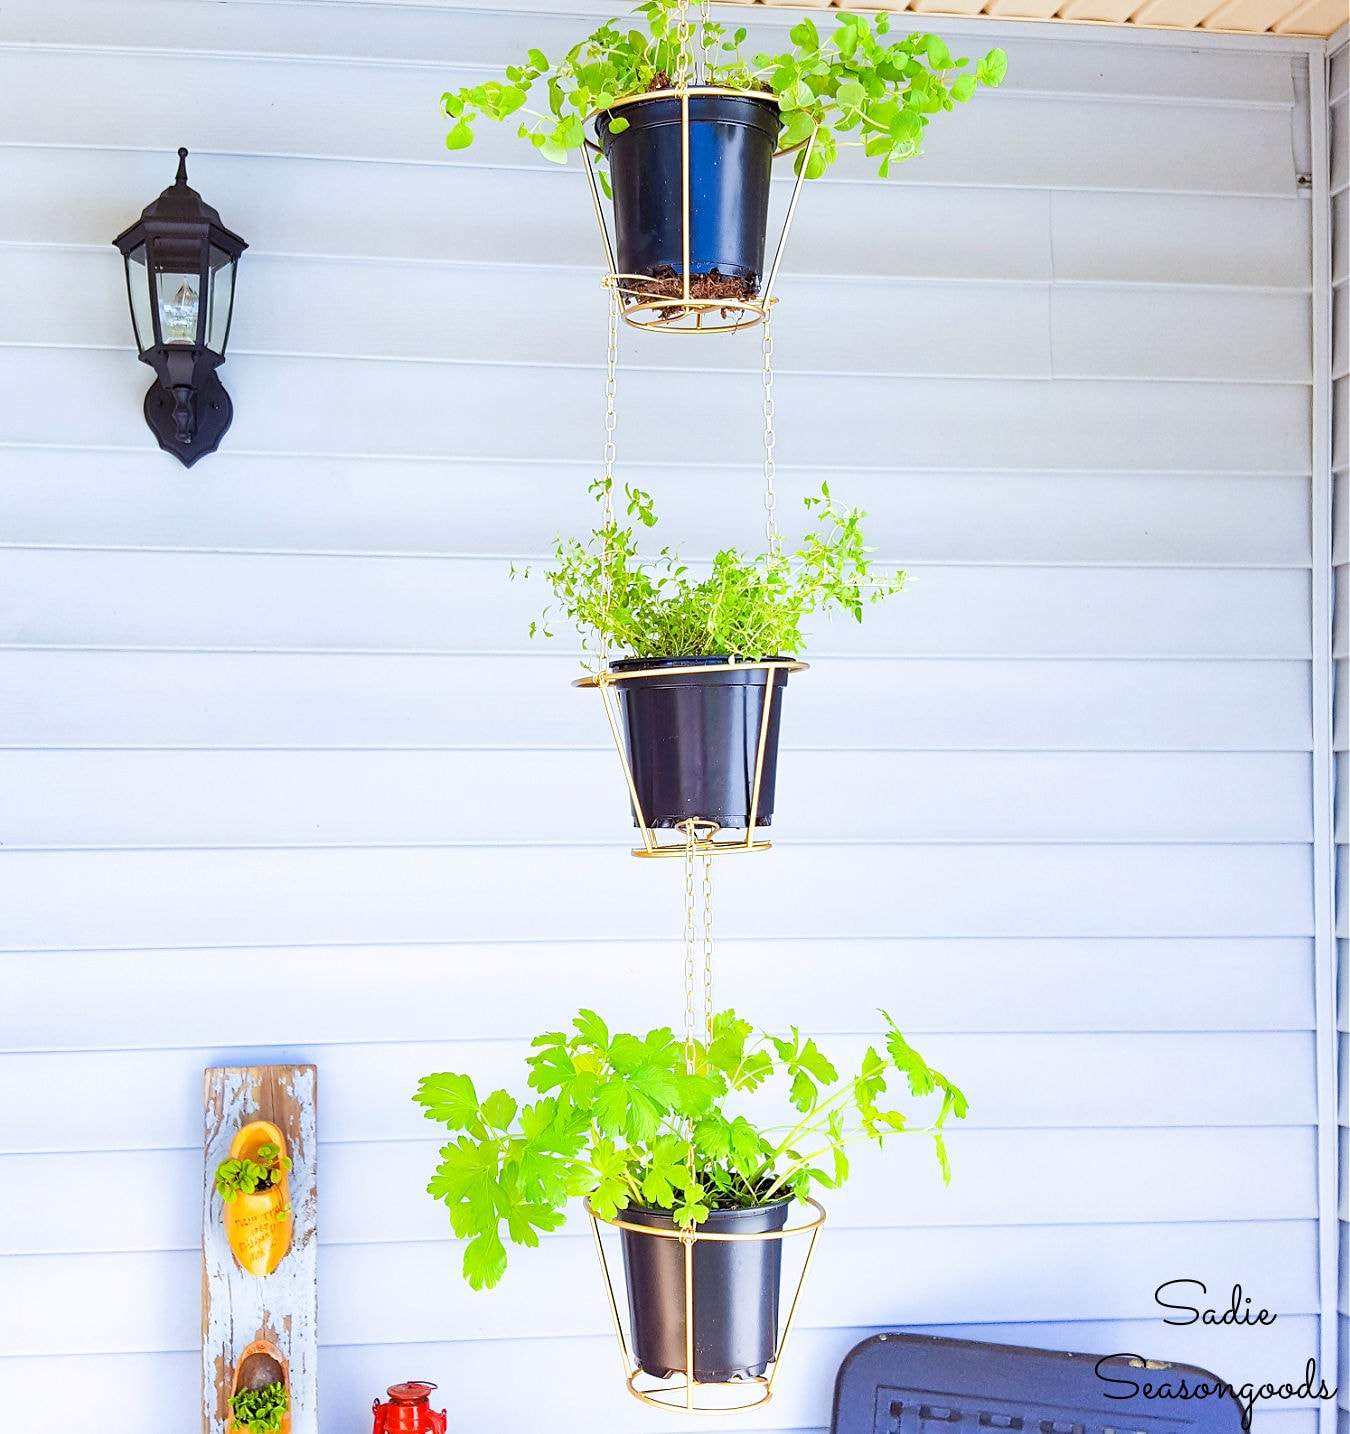 Hanging Herb Baskets from Lampshade Frames